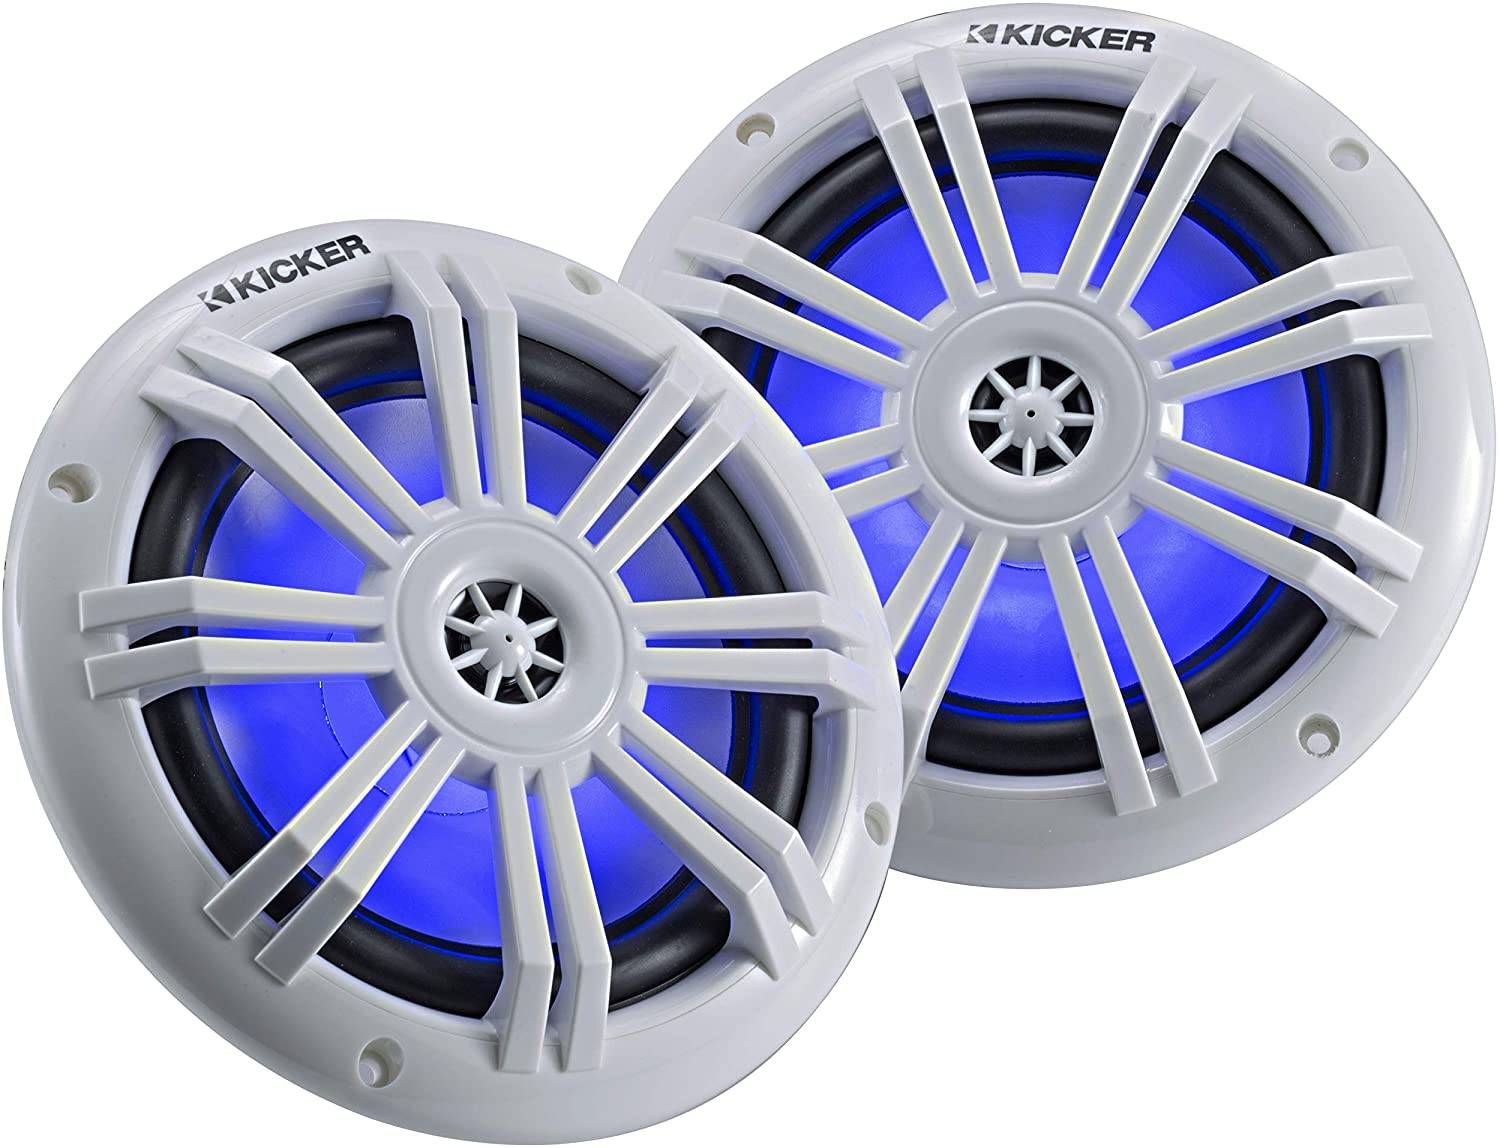 Kicker 45KM604WL 6.5 Inch 2 Way Coaxial Marine Light Up LED Boat Speakers, Pair, 4 Ohm, 150 Max Watts, Blue